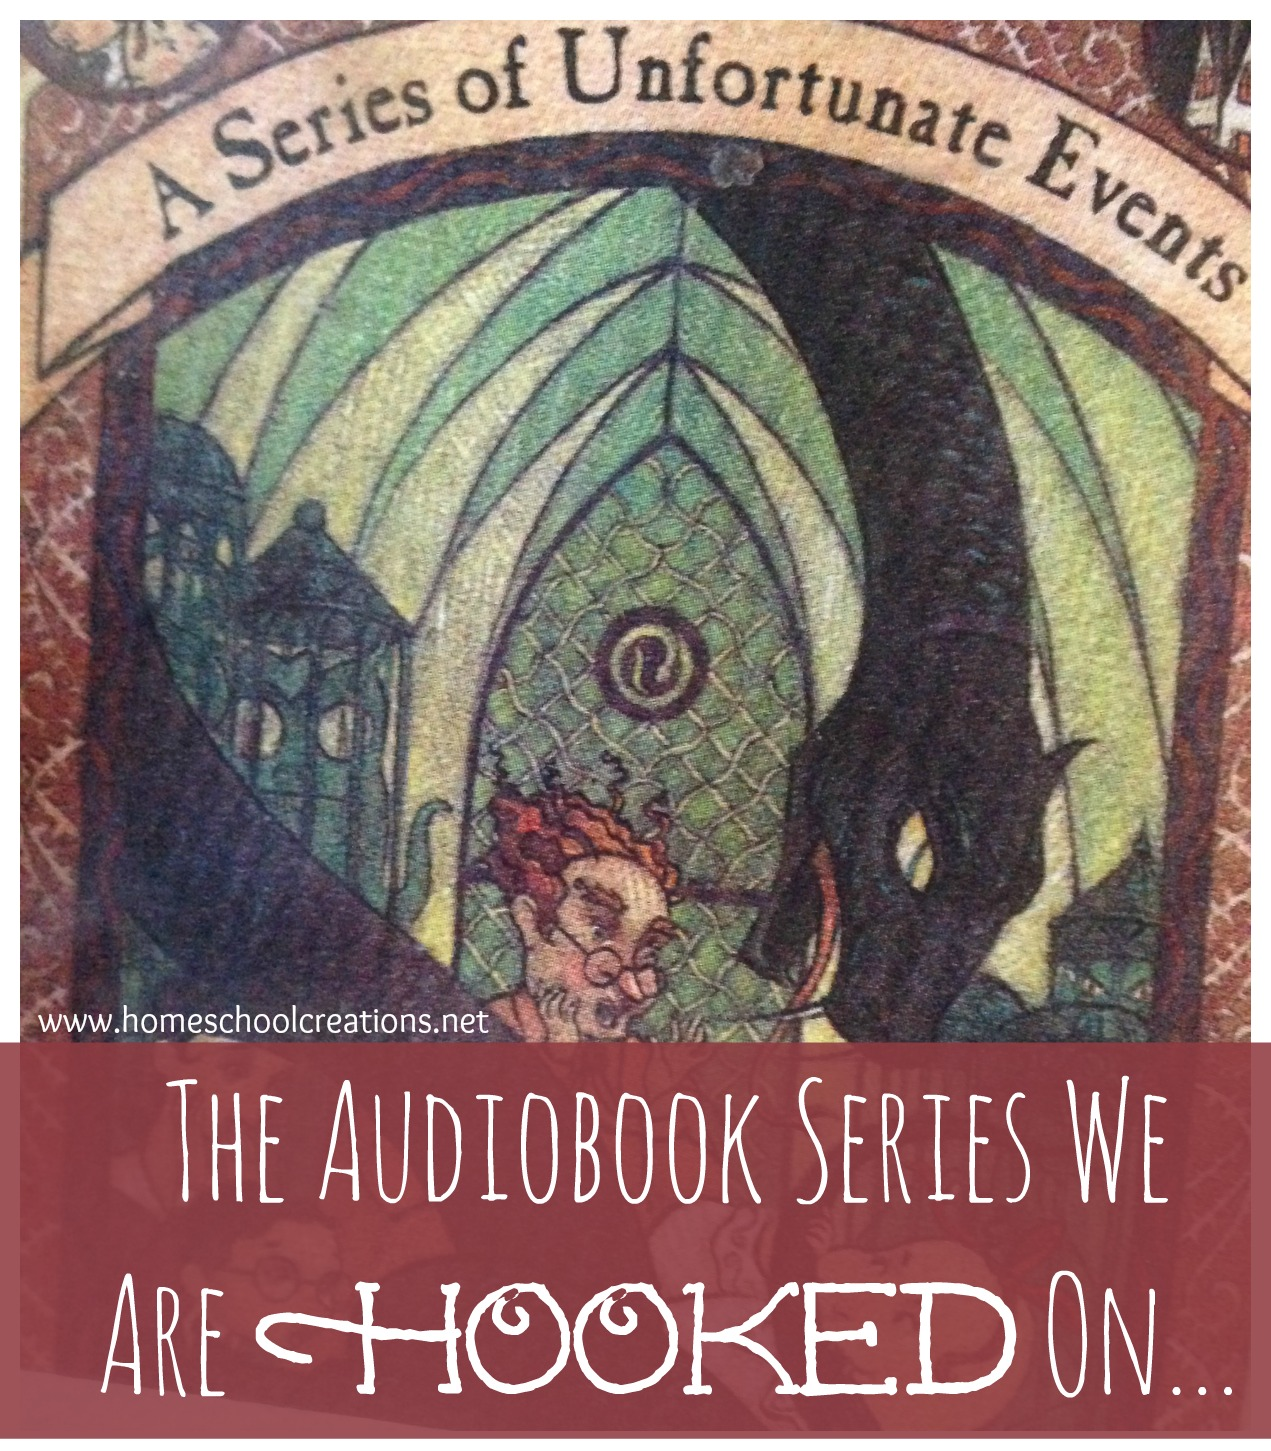 Lemony Snicket audiobook series